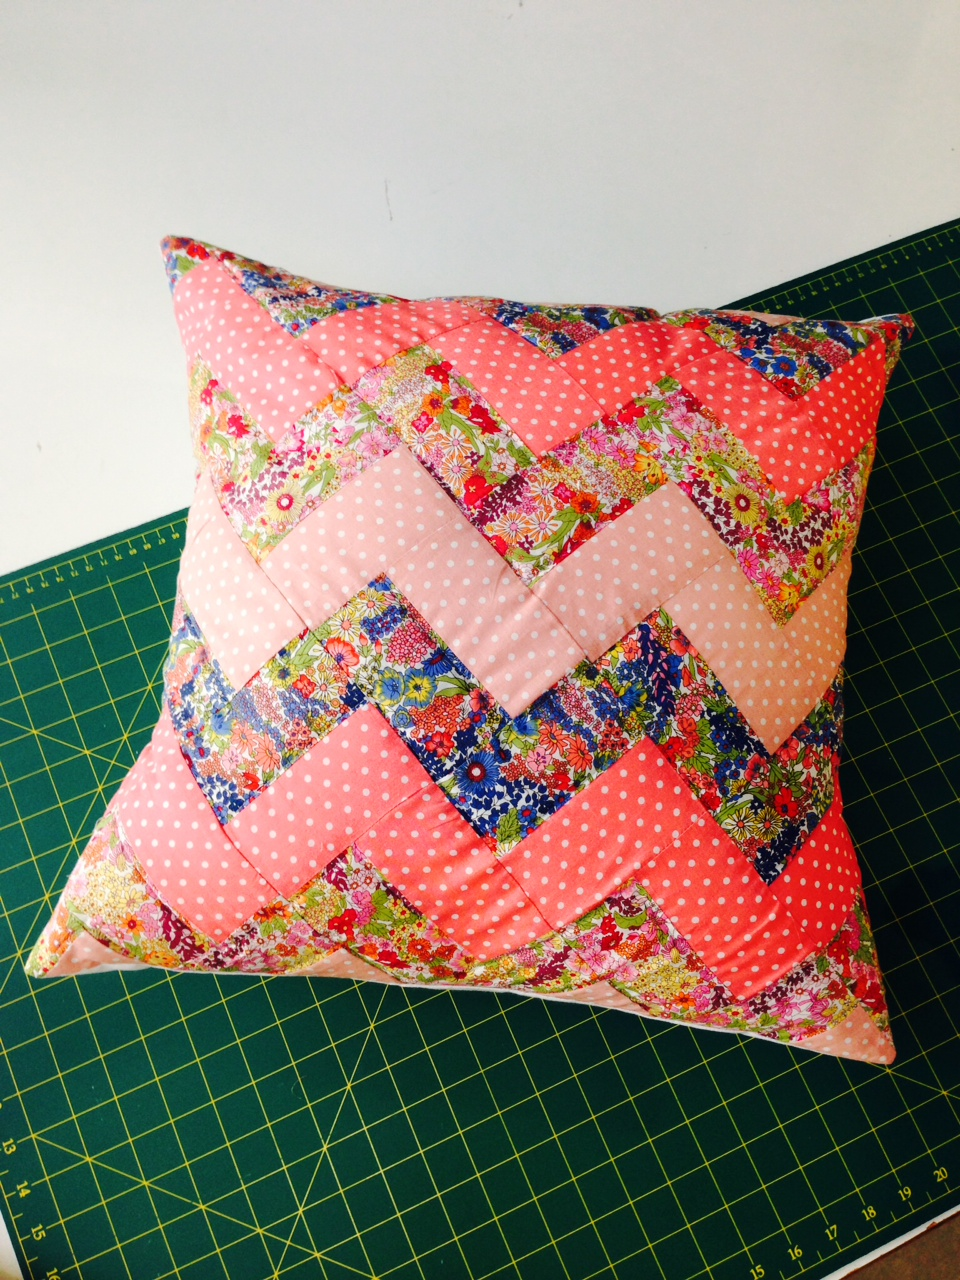 Beginners Quilting Lessons in Sydney : quilting beginners - Adamdwight.com